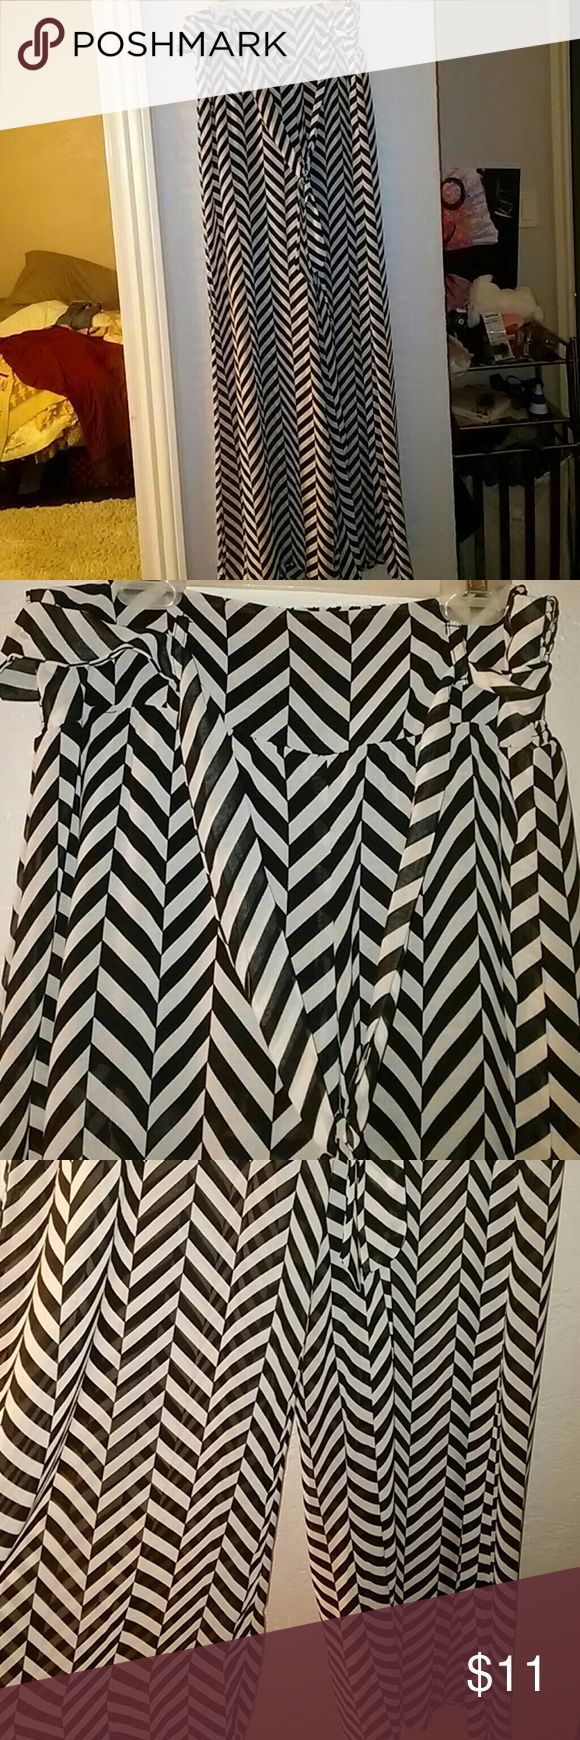 High waist Flare pants Black and white chevron design flare pants. Never worn Pants Wide Leg